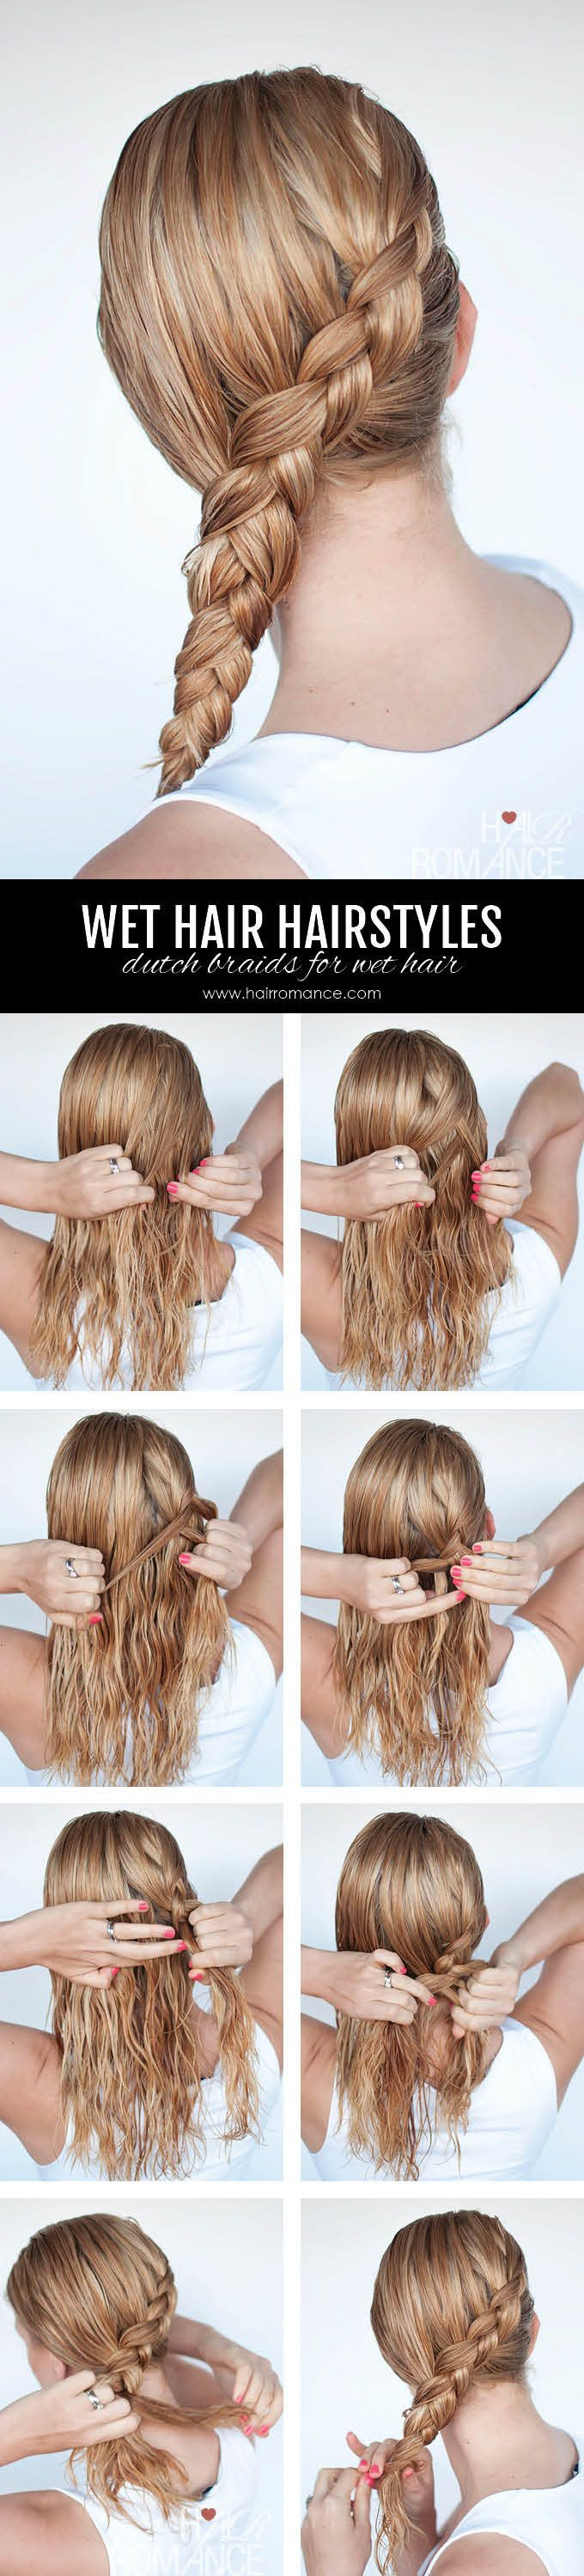 Astonishing Hairstyles For Wet Hair 3 Simple Braid Tutorials You Can Wear In Short Hairstyles For Black Women Fulllsitofus